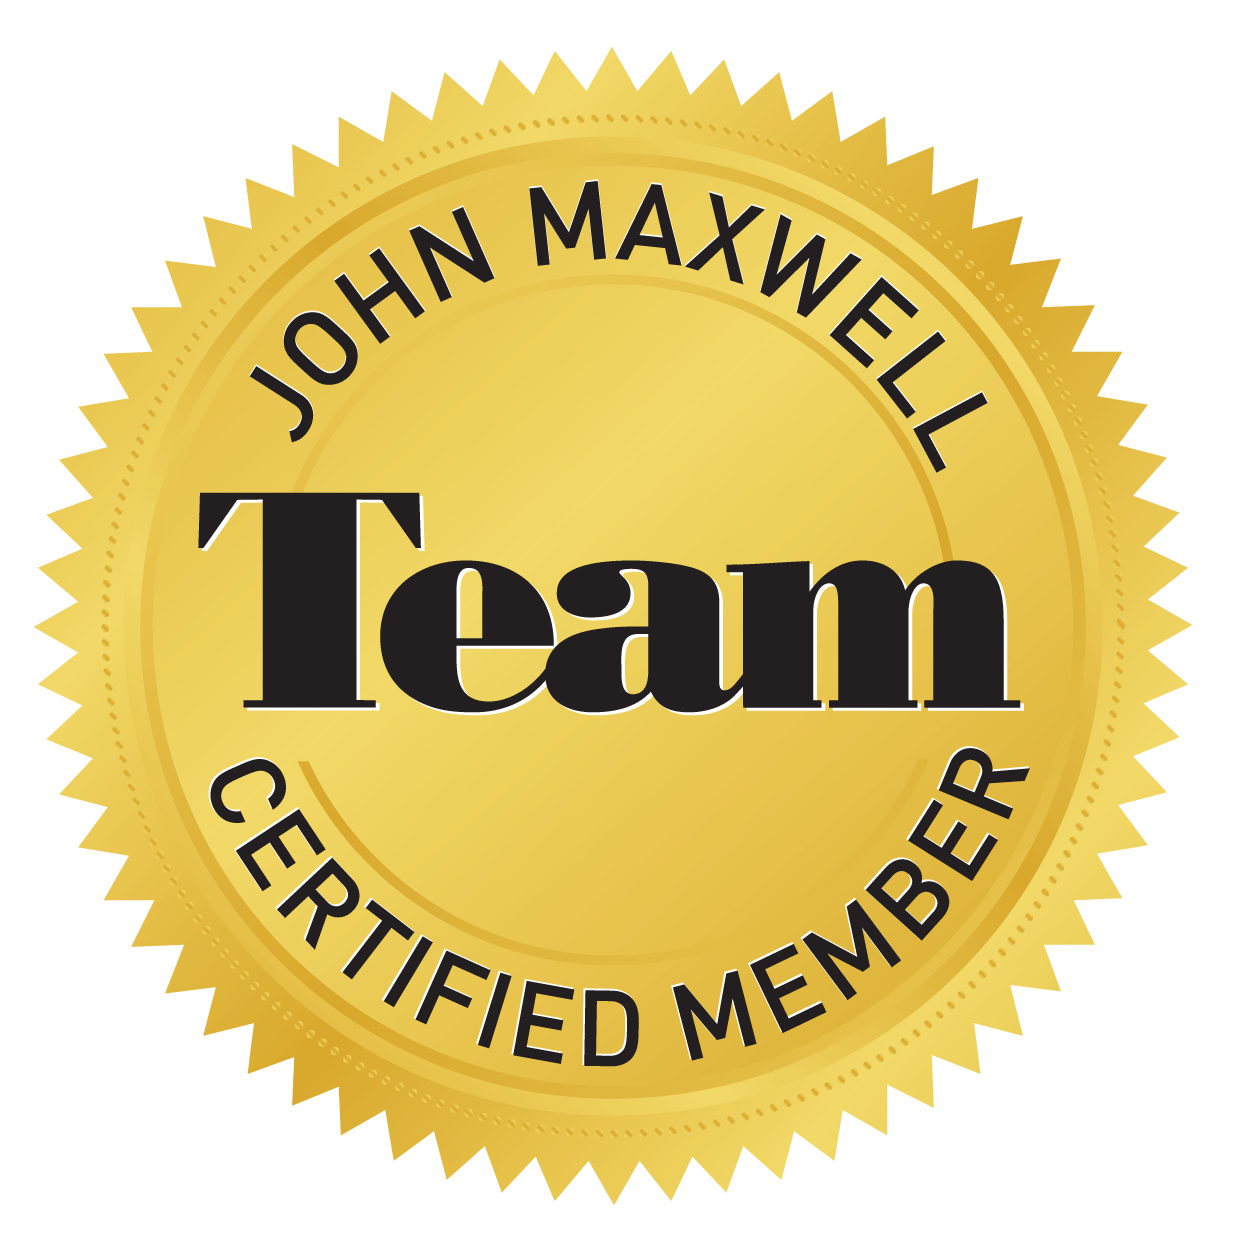 Mark Heddy is a John Maxwell Team Certified Speaker